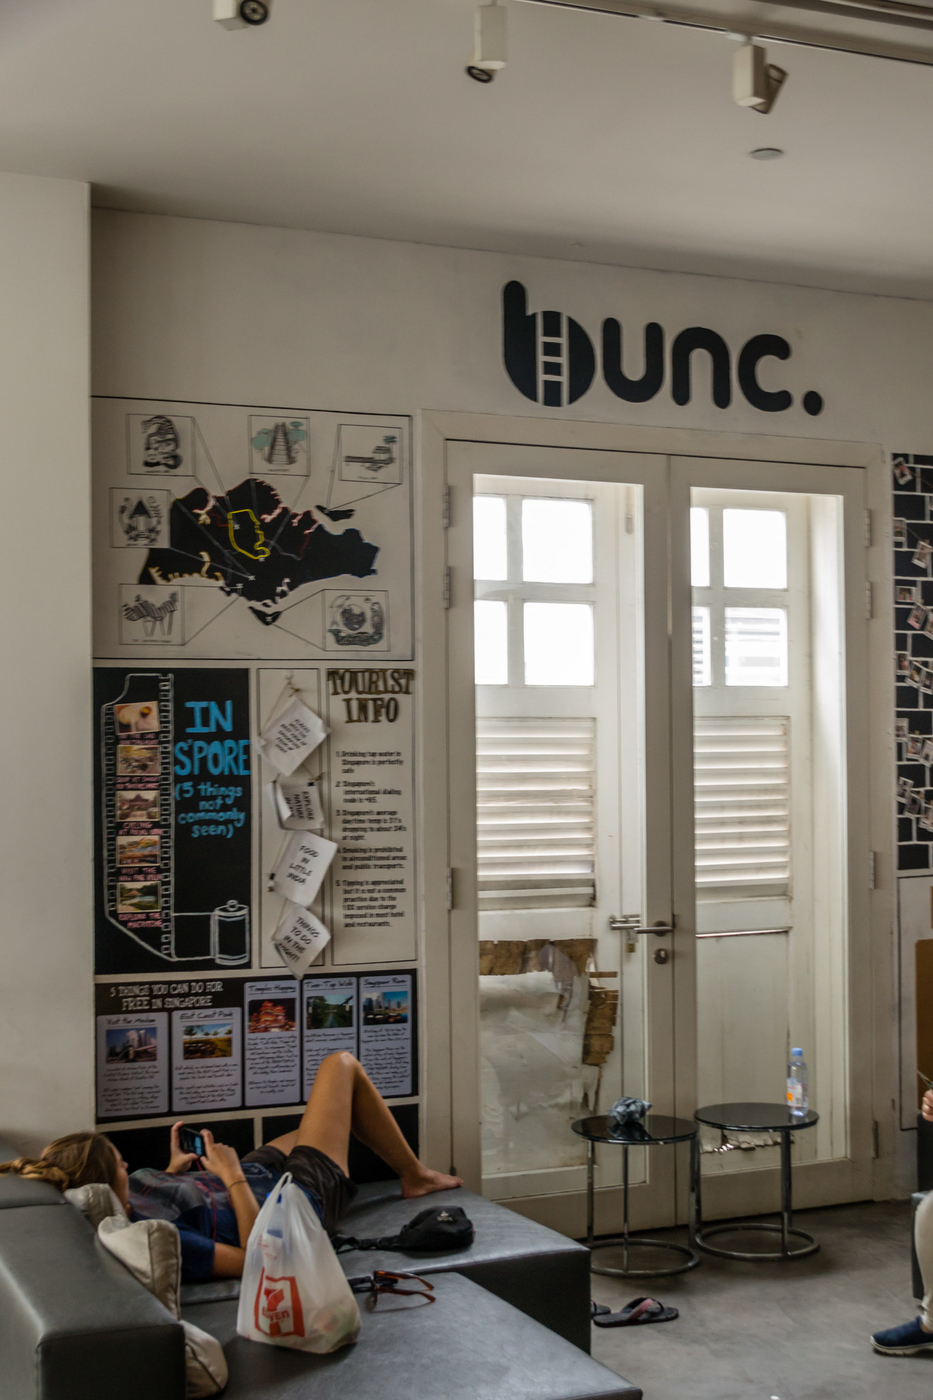 bunc-hostel-lounge.jpg